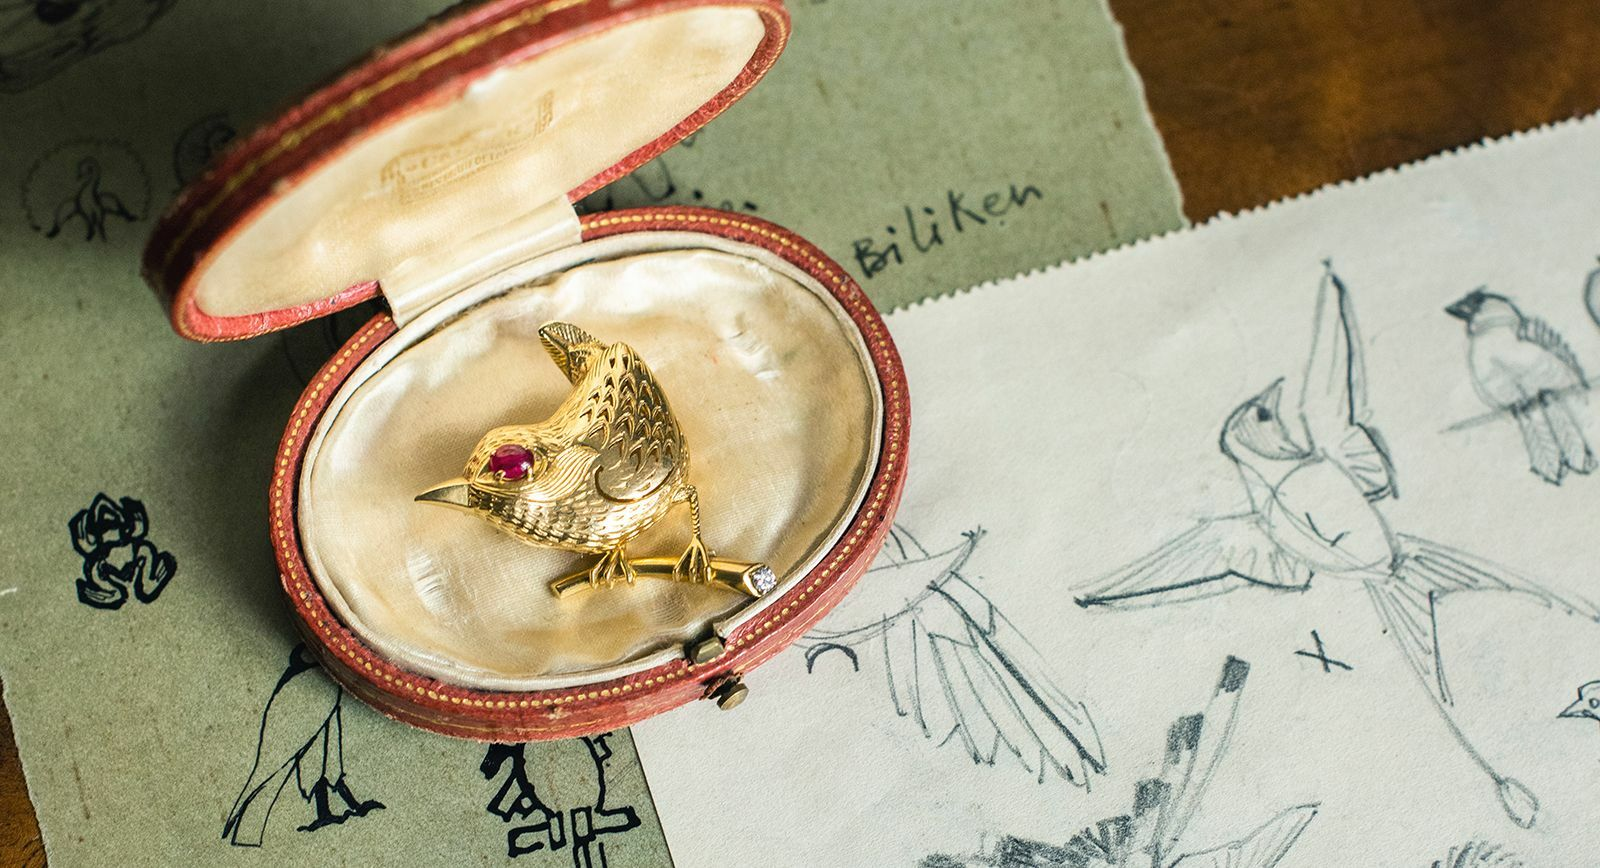 Cartier bird brooch with original archive sketches